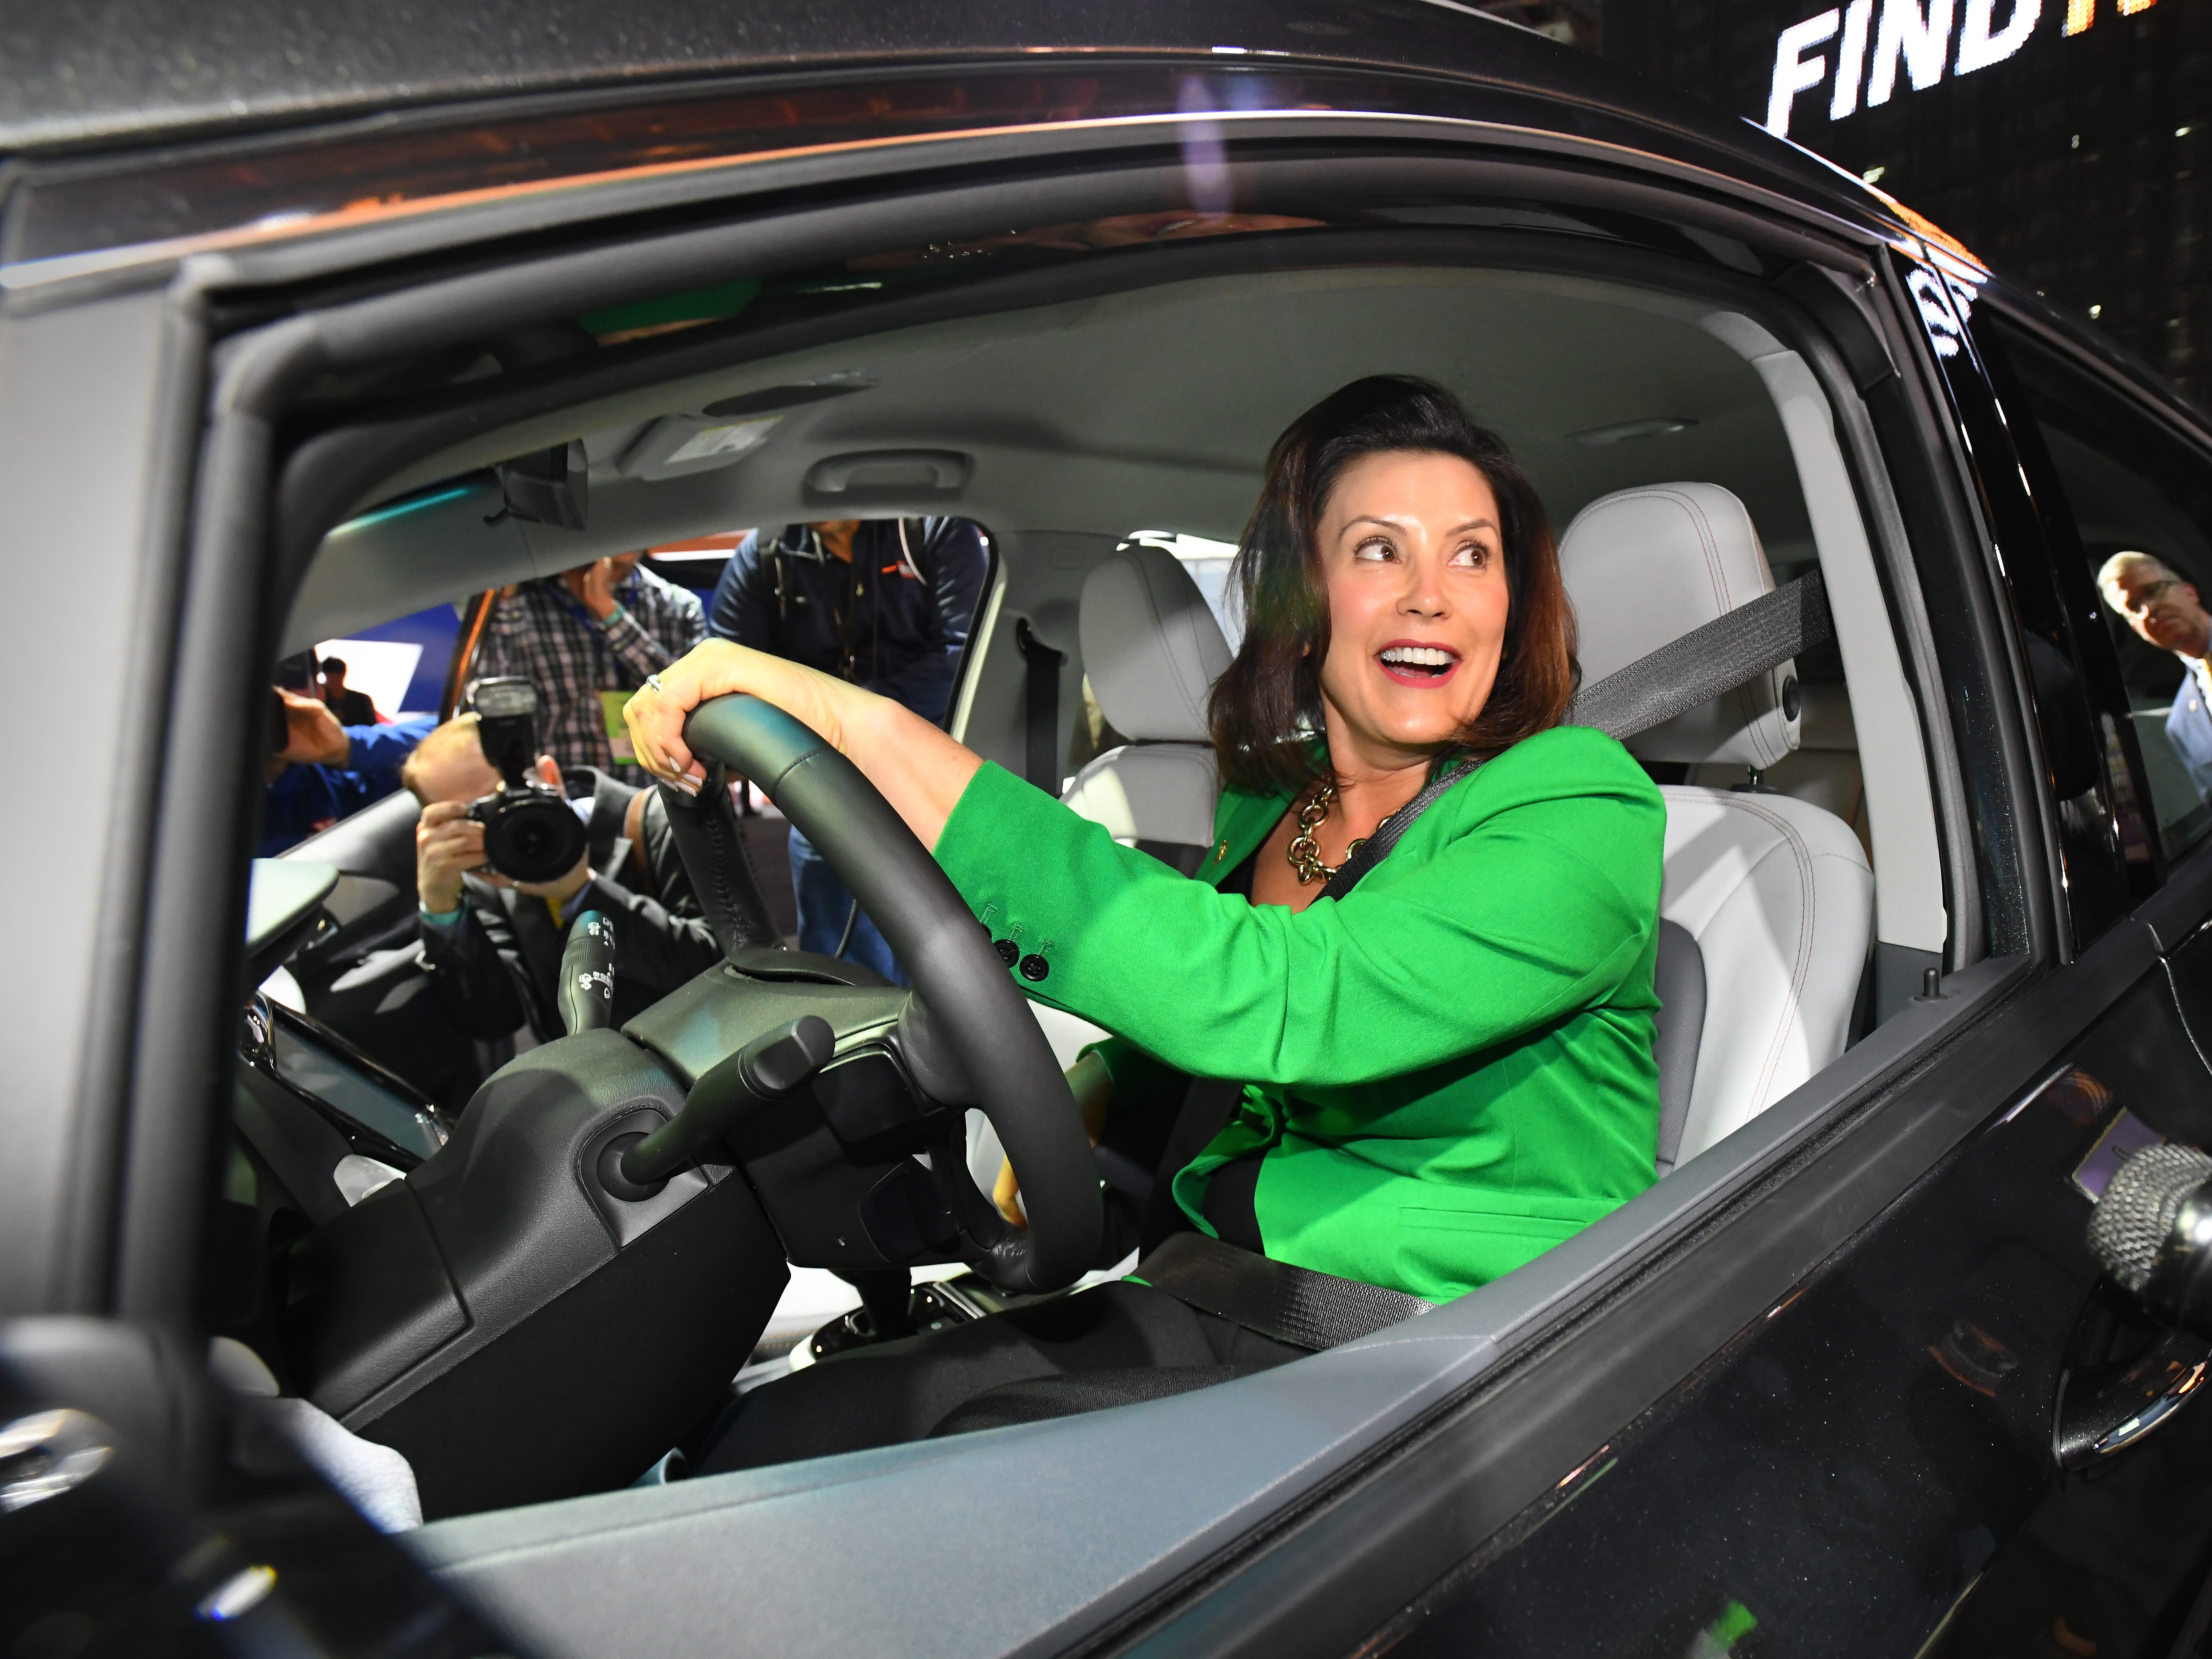 Michigan Gov. Gretchen Whitmer gets a feel for the Chevrolet Bolt EV during a tour of the auto show Tuesday.